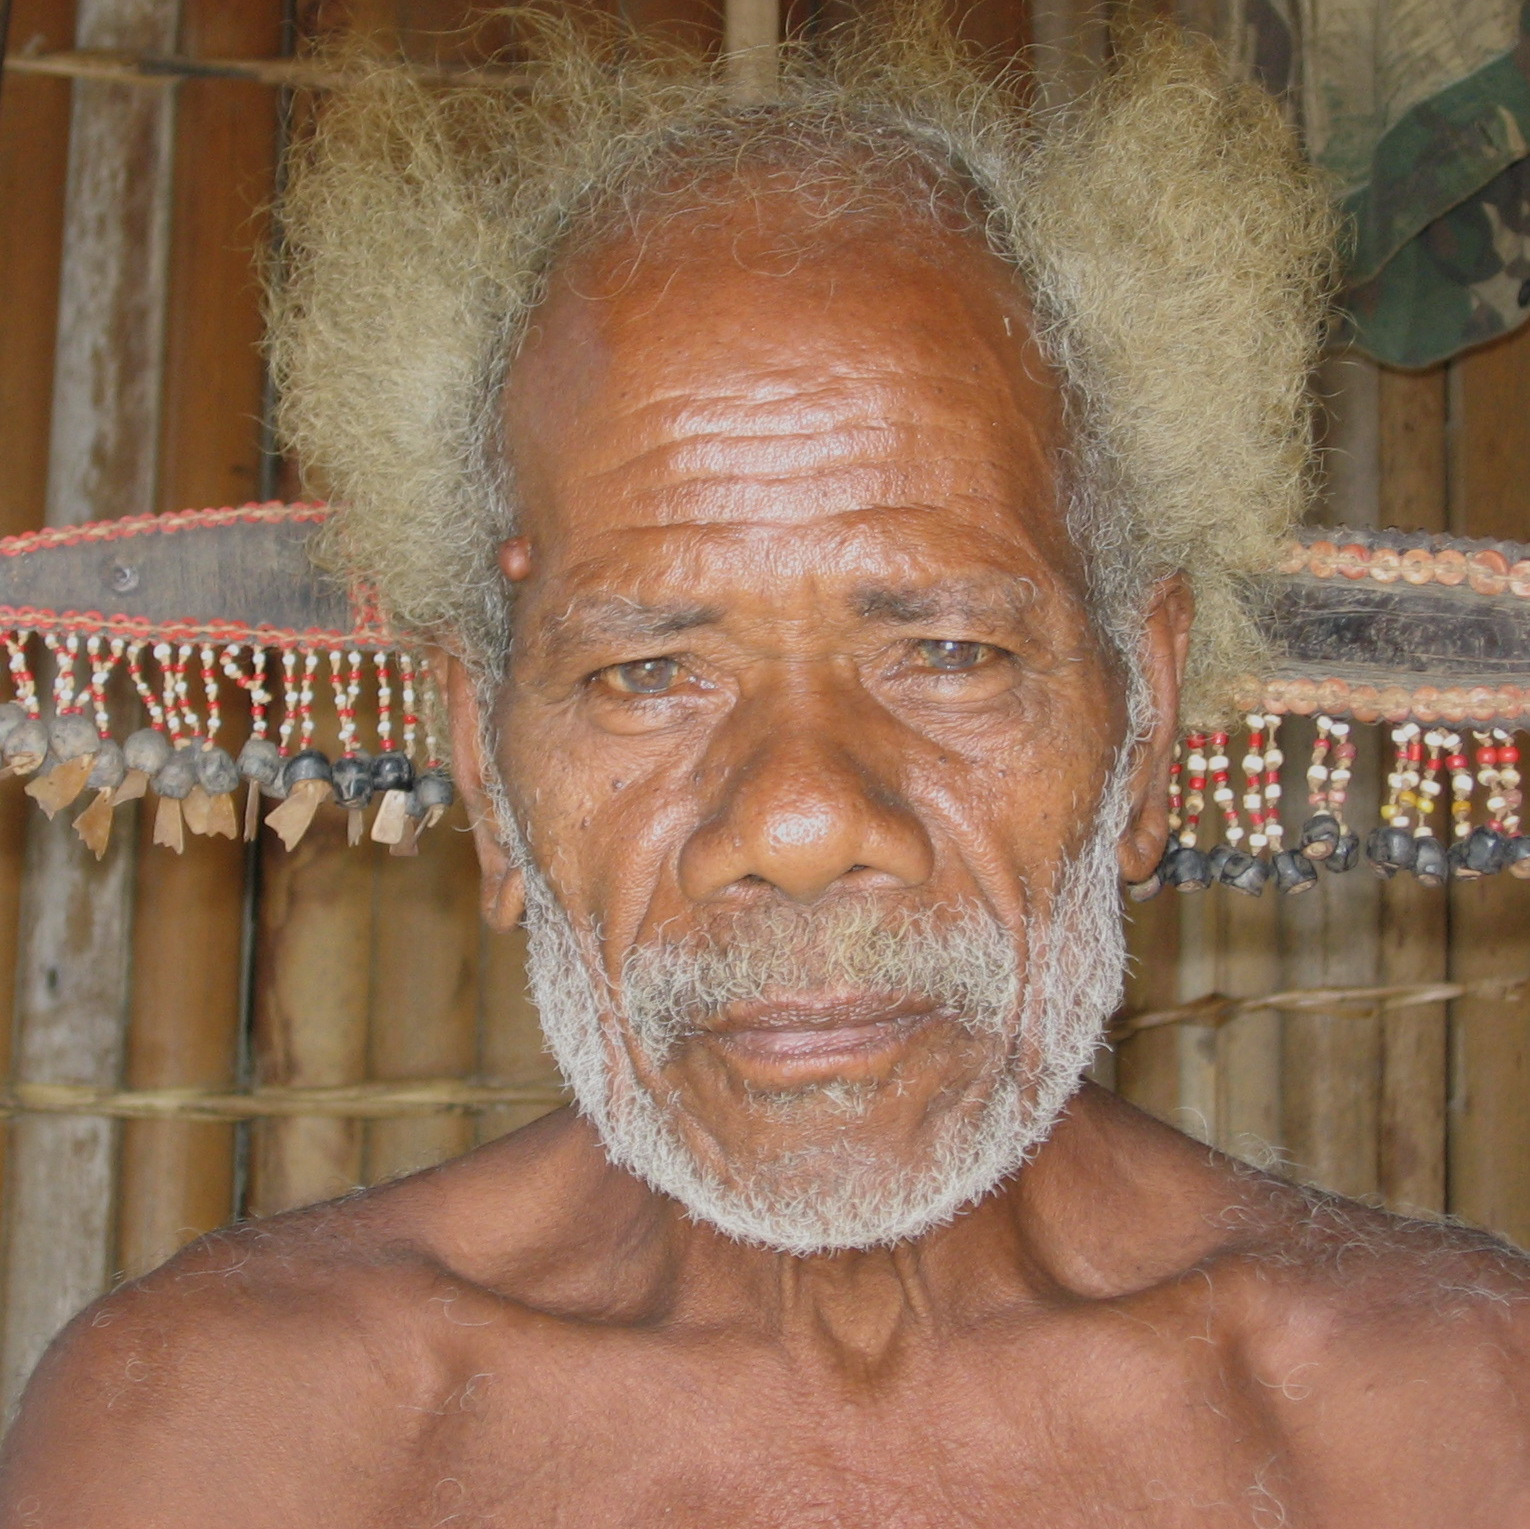 Collingwood Bay Man with Combs, New Guinea Art, Oceanic Art, South Pacific Art, Tribal Art